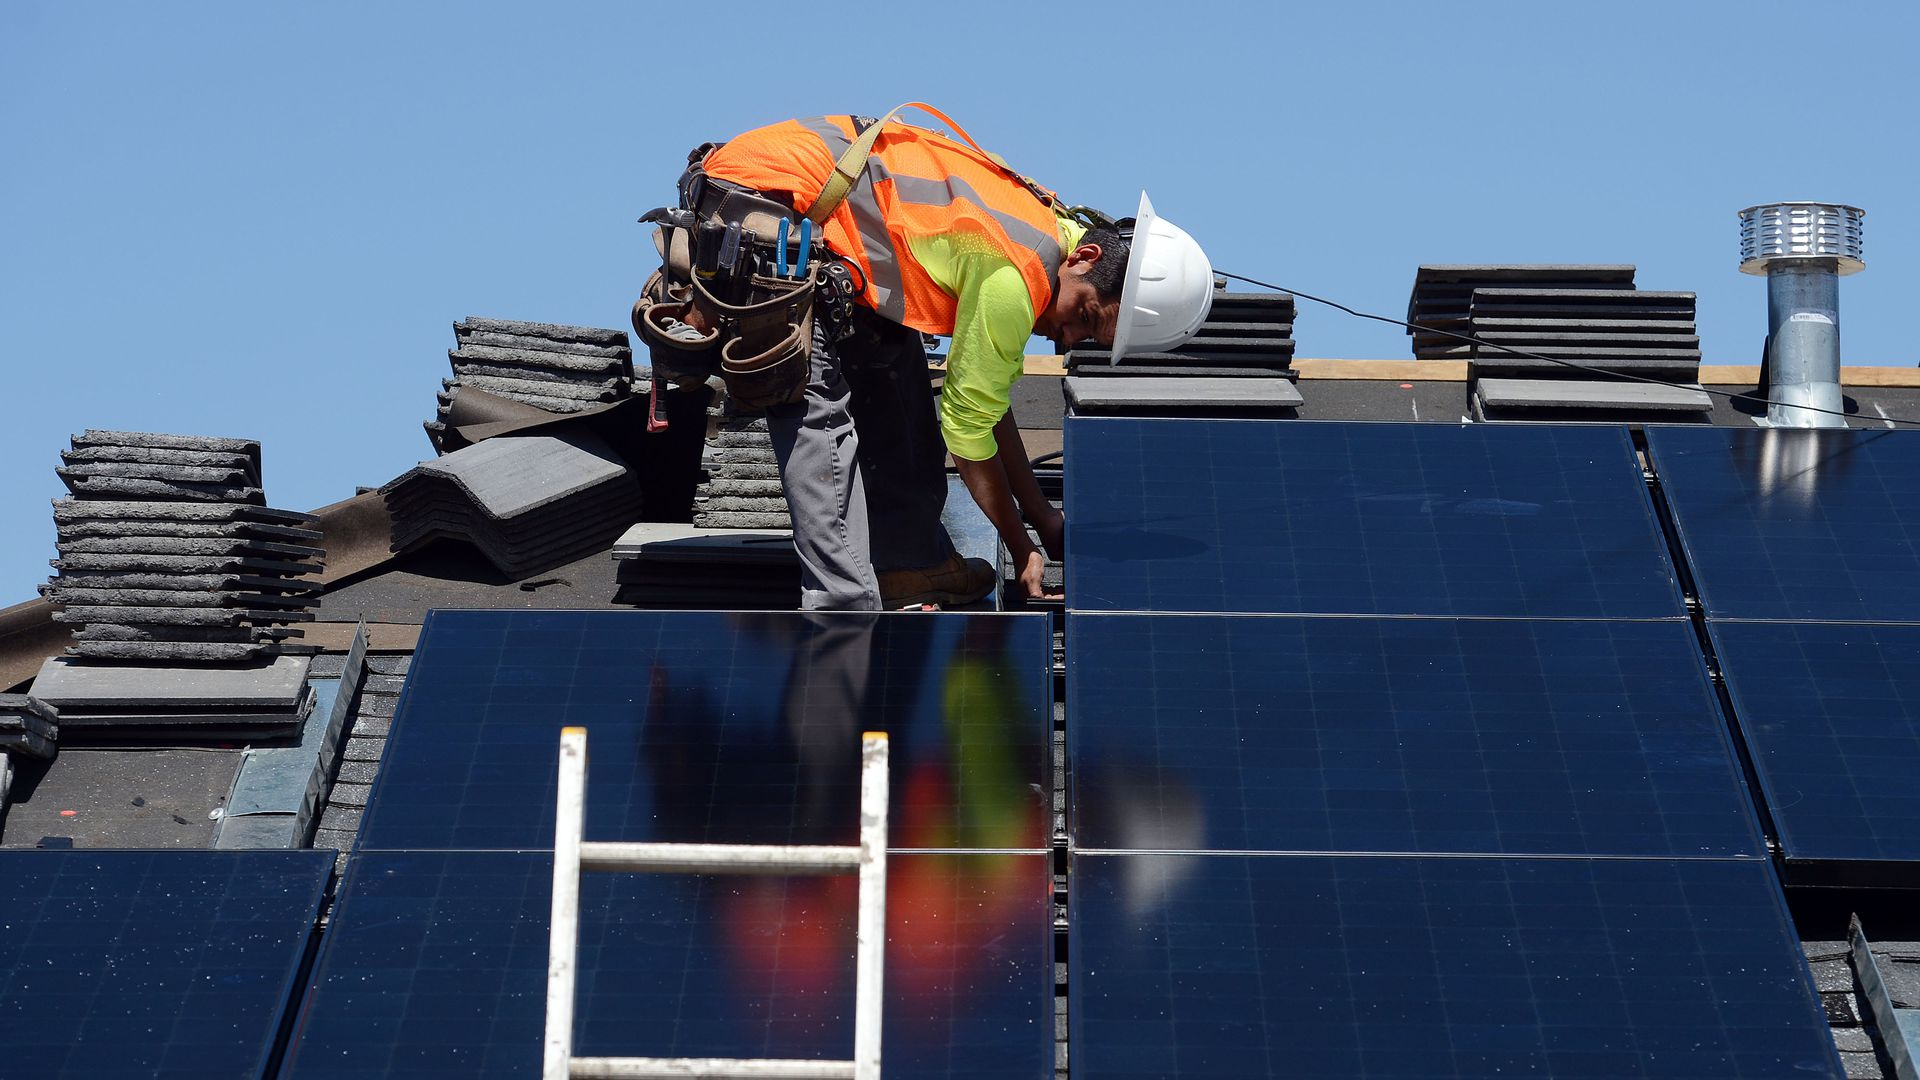 A worker installs solar panels on a roof